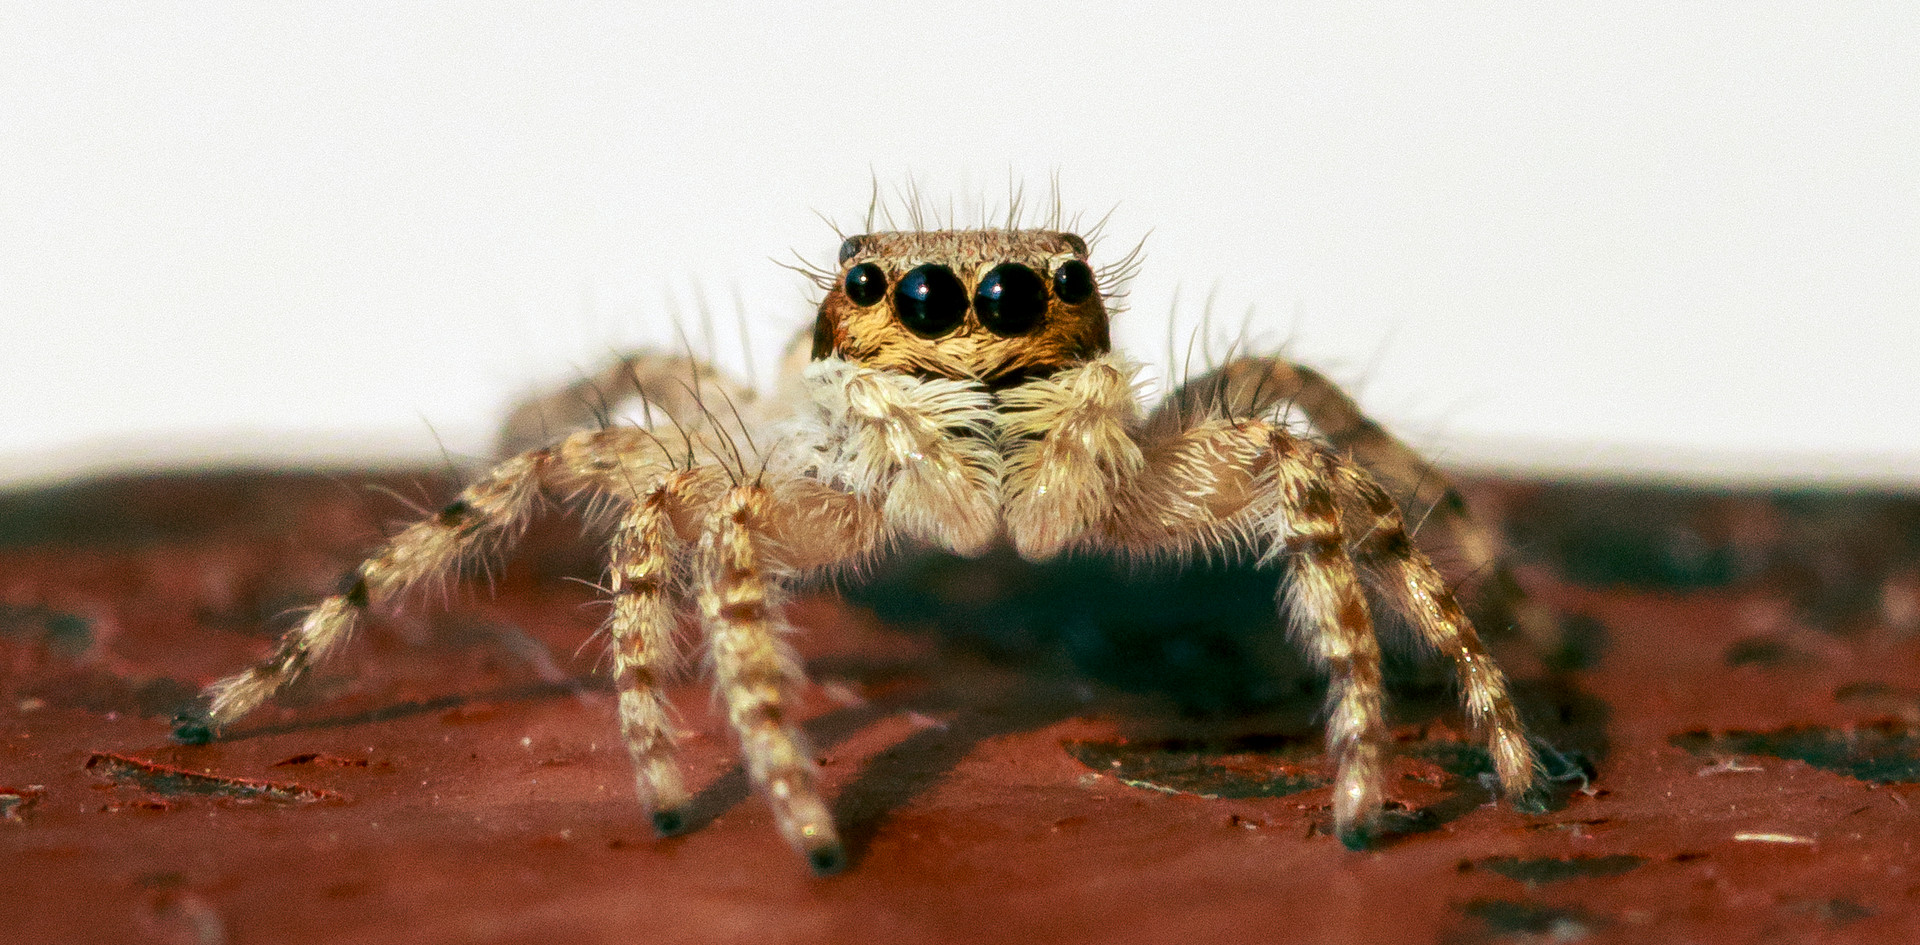 African Jumping Spider.jpg